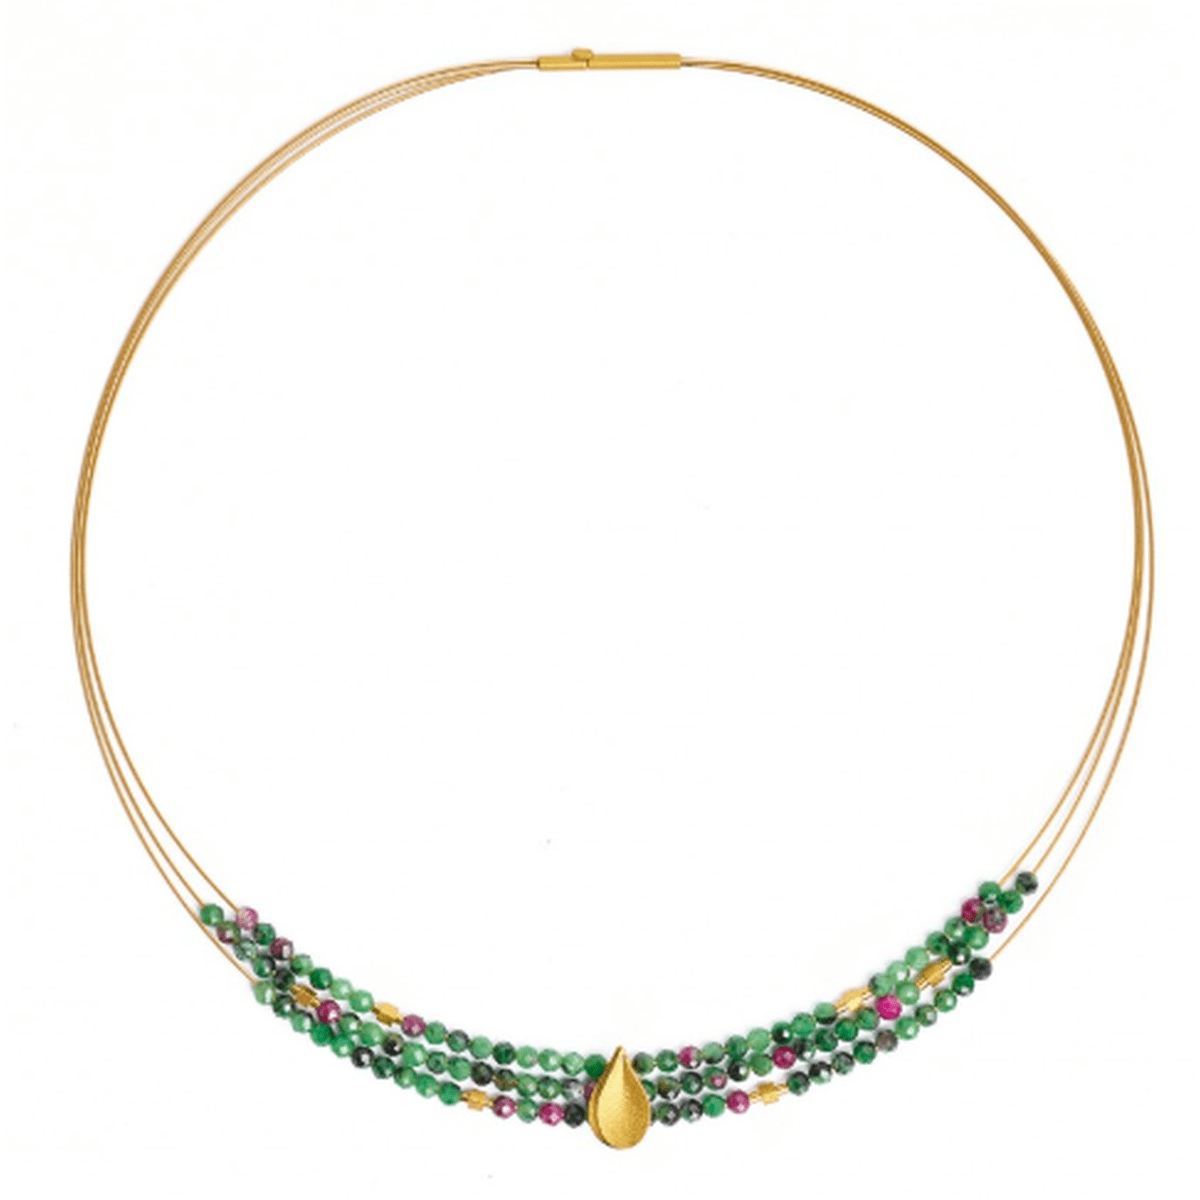 Aquinsa Ruby Zoisite Necklace - 84123086-Bernd Wolf-Renee Taylor Gallery